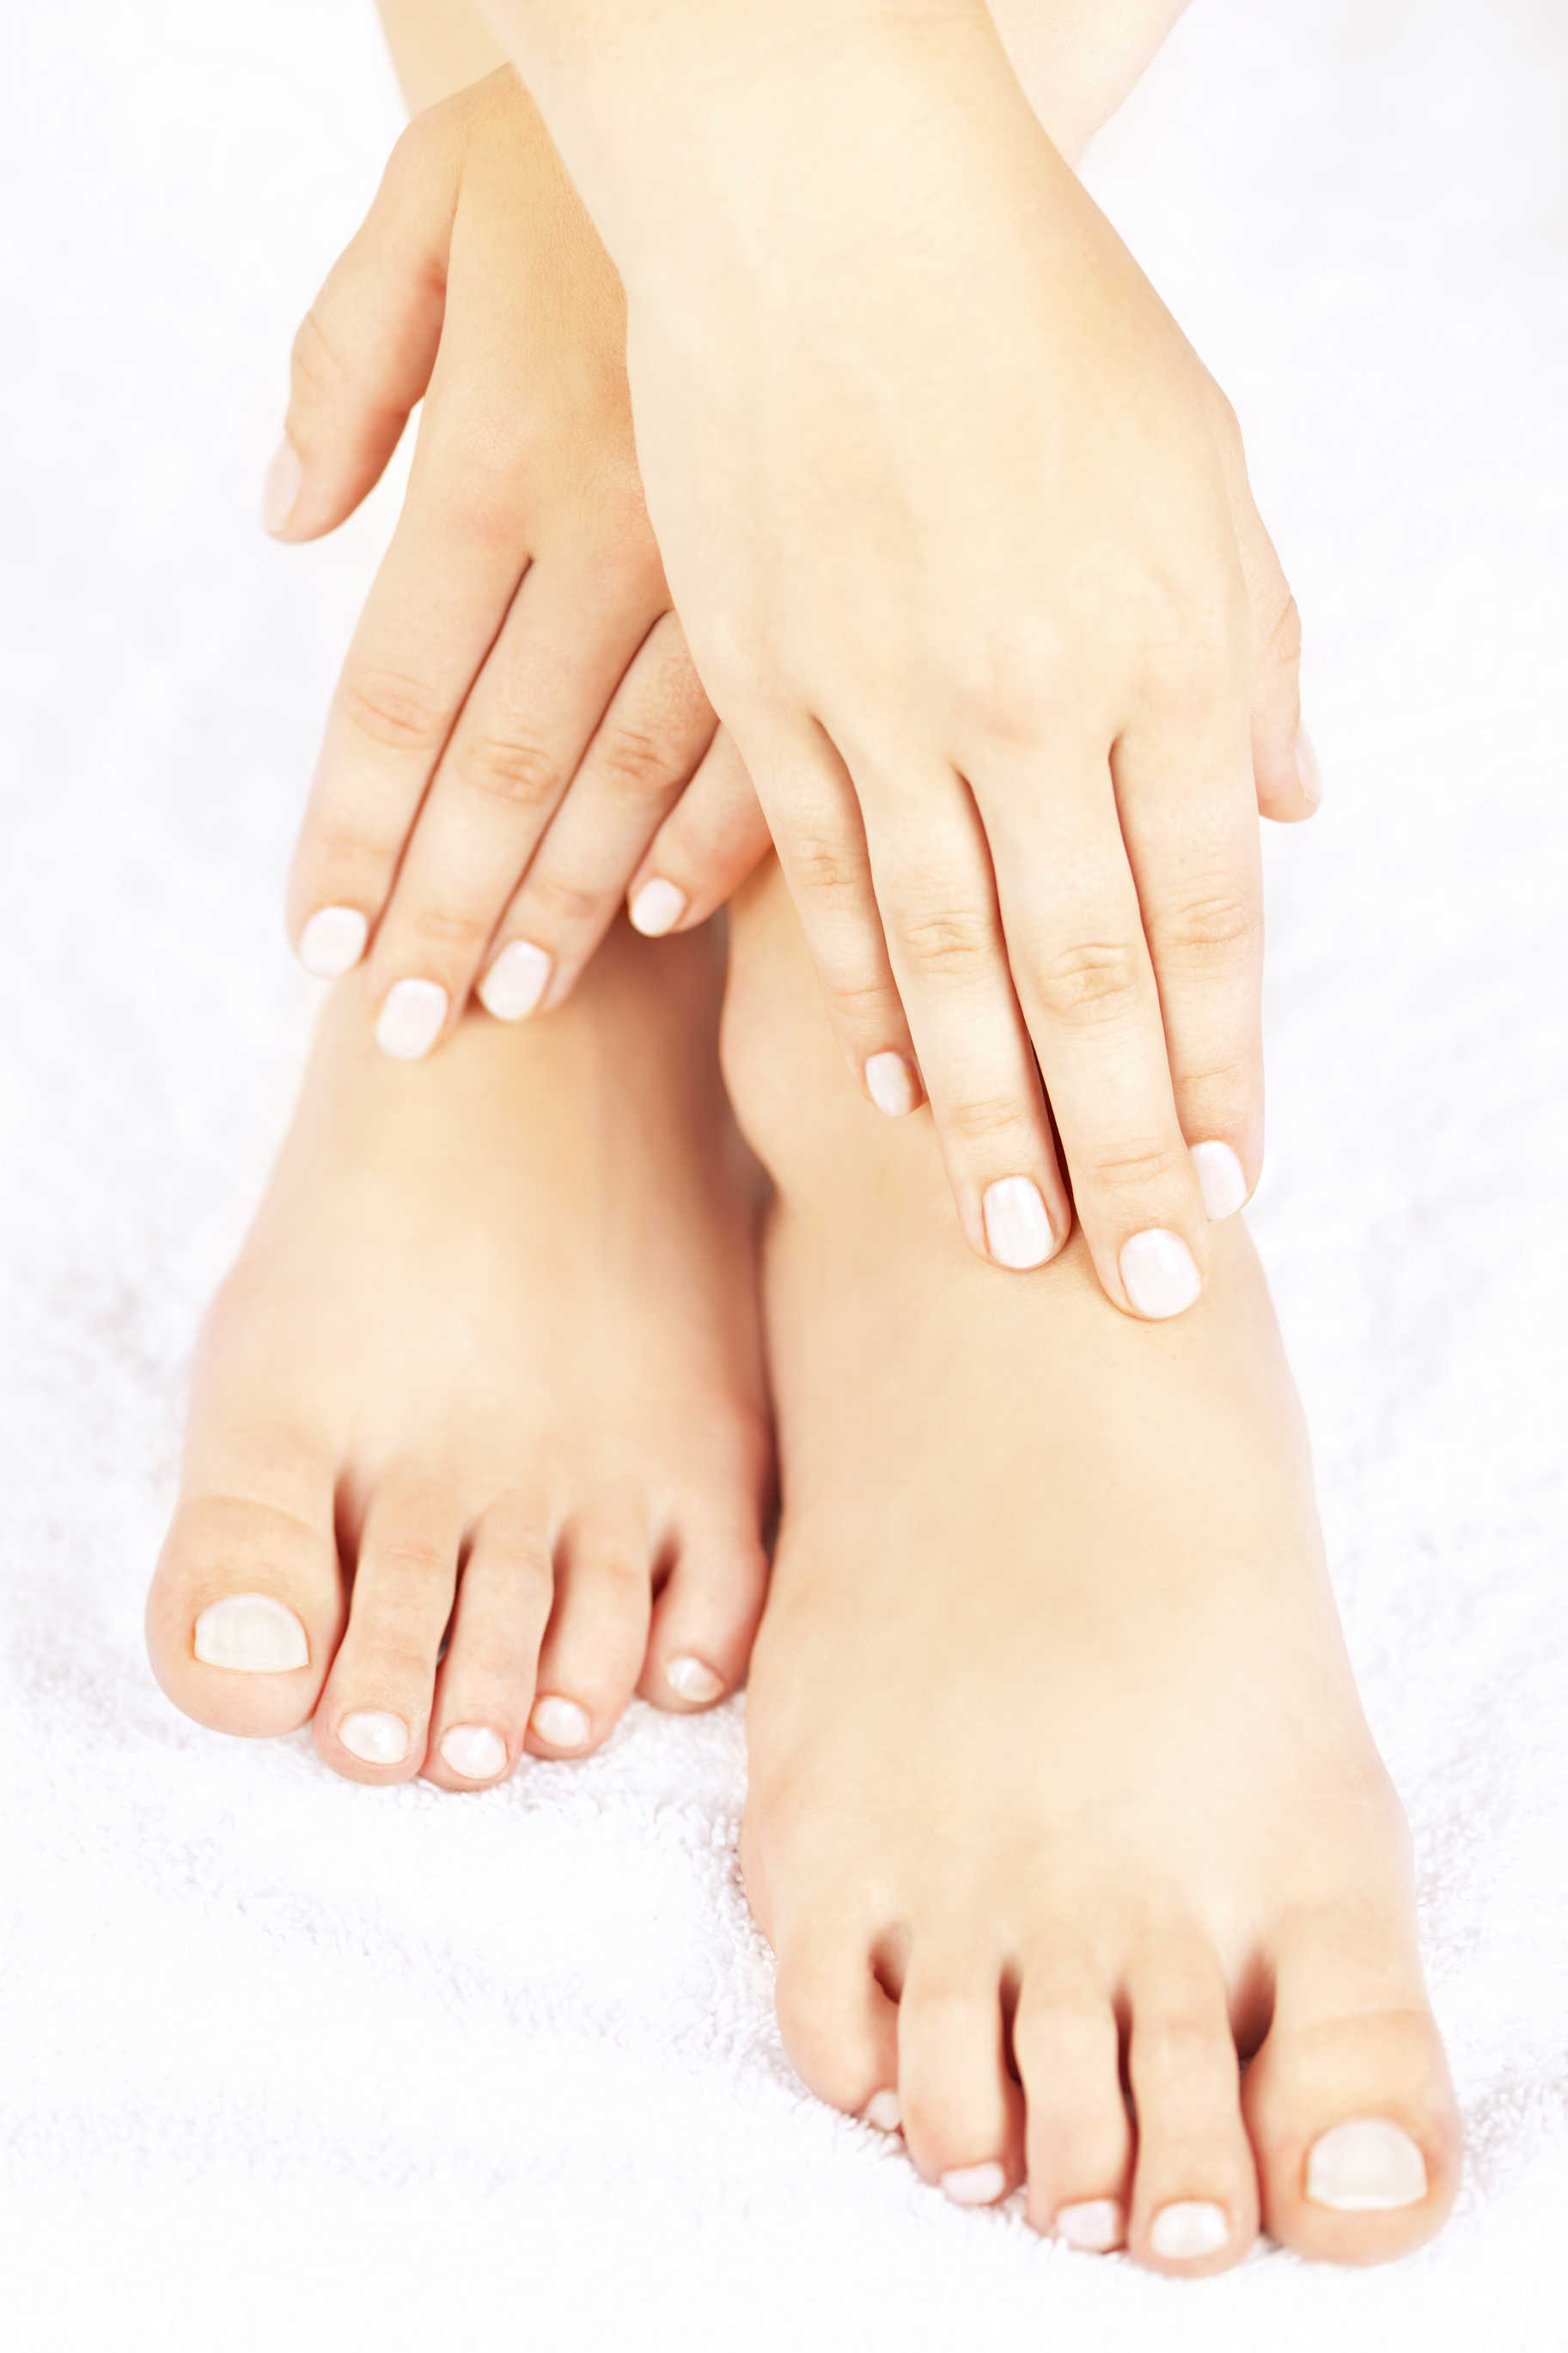 Reverse Type 2 Diabetes. The Genuine Blood Sugar Solution.  Image of foot care for diabetics